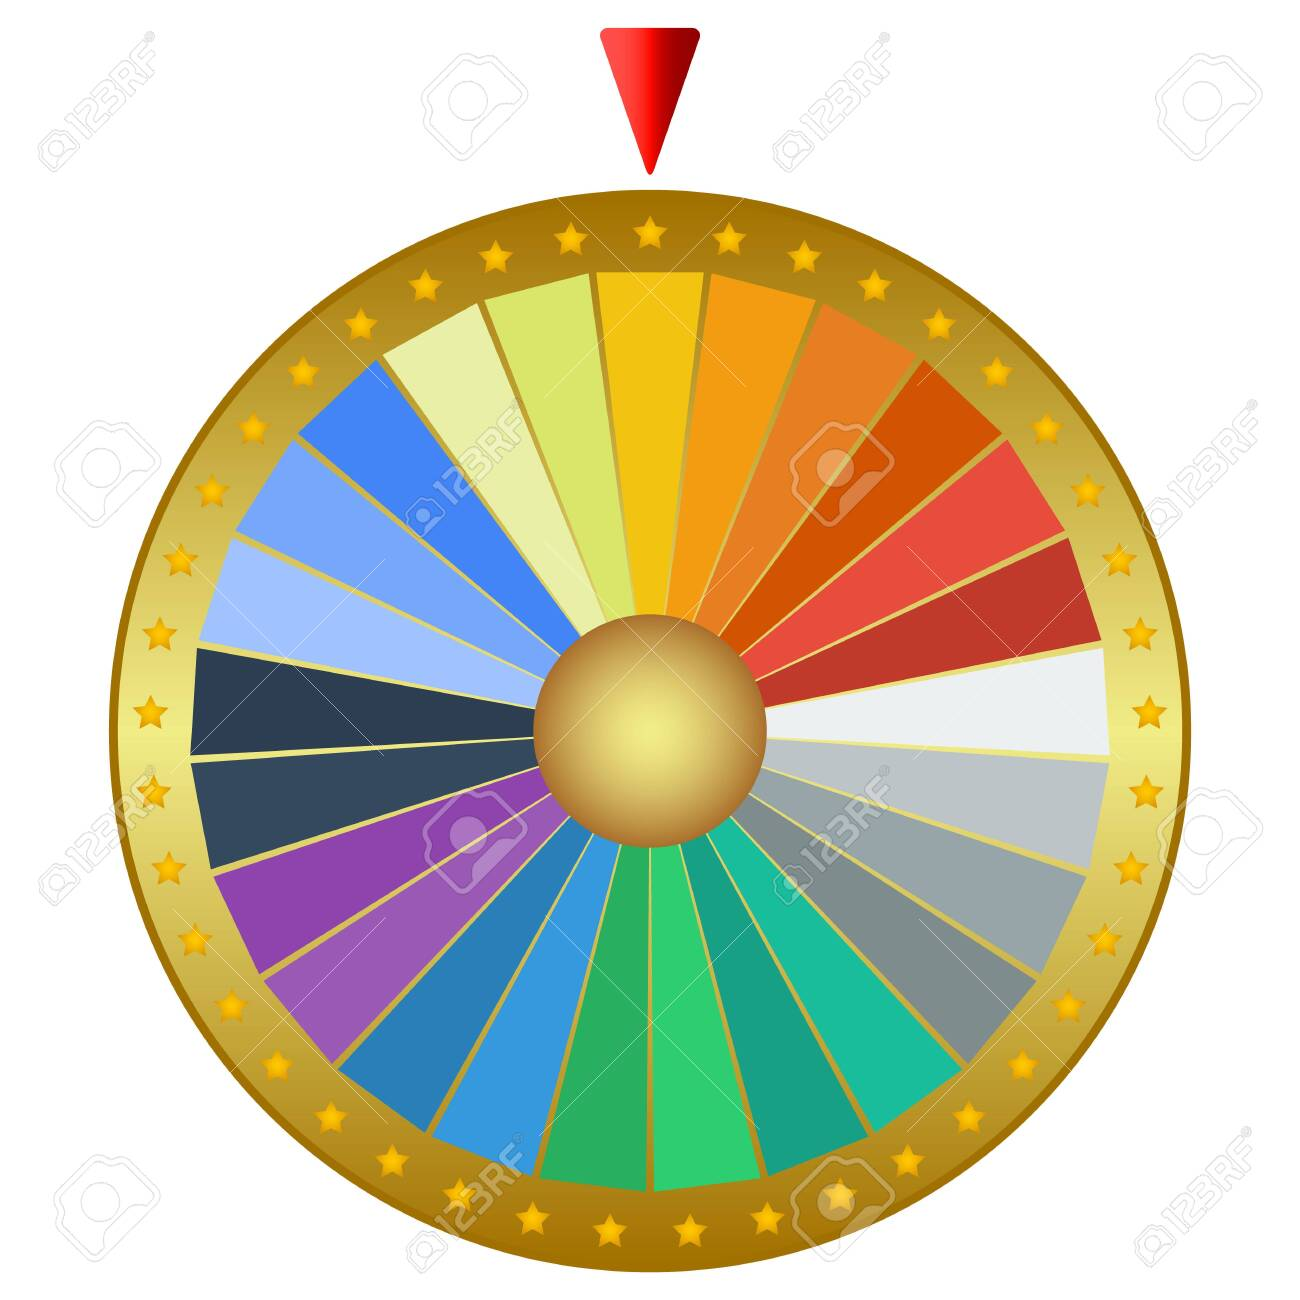 Prize Wheel Of Fortune Isolated On A White Background Casino Royalty Free Cliparts Vectors And Stock Illustration Image 142414379